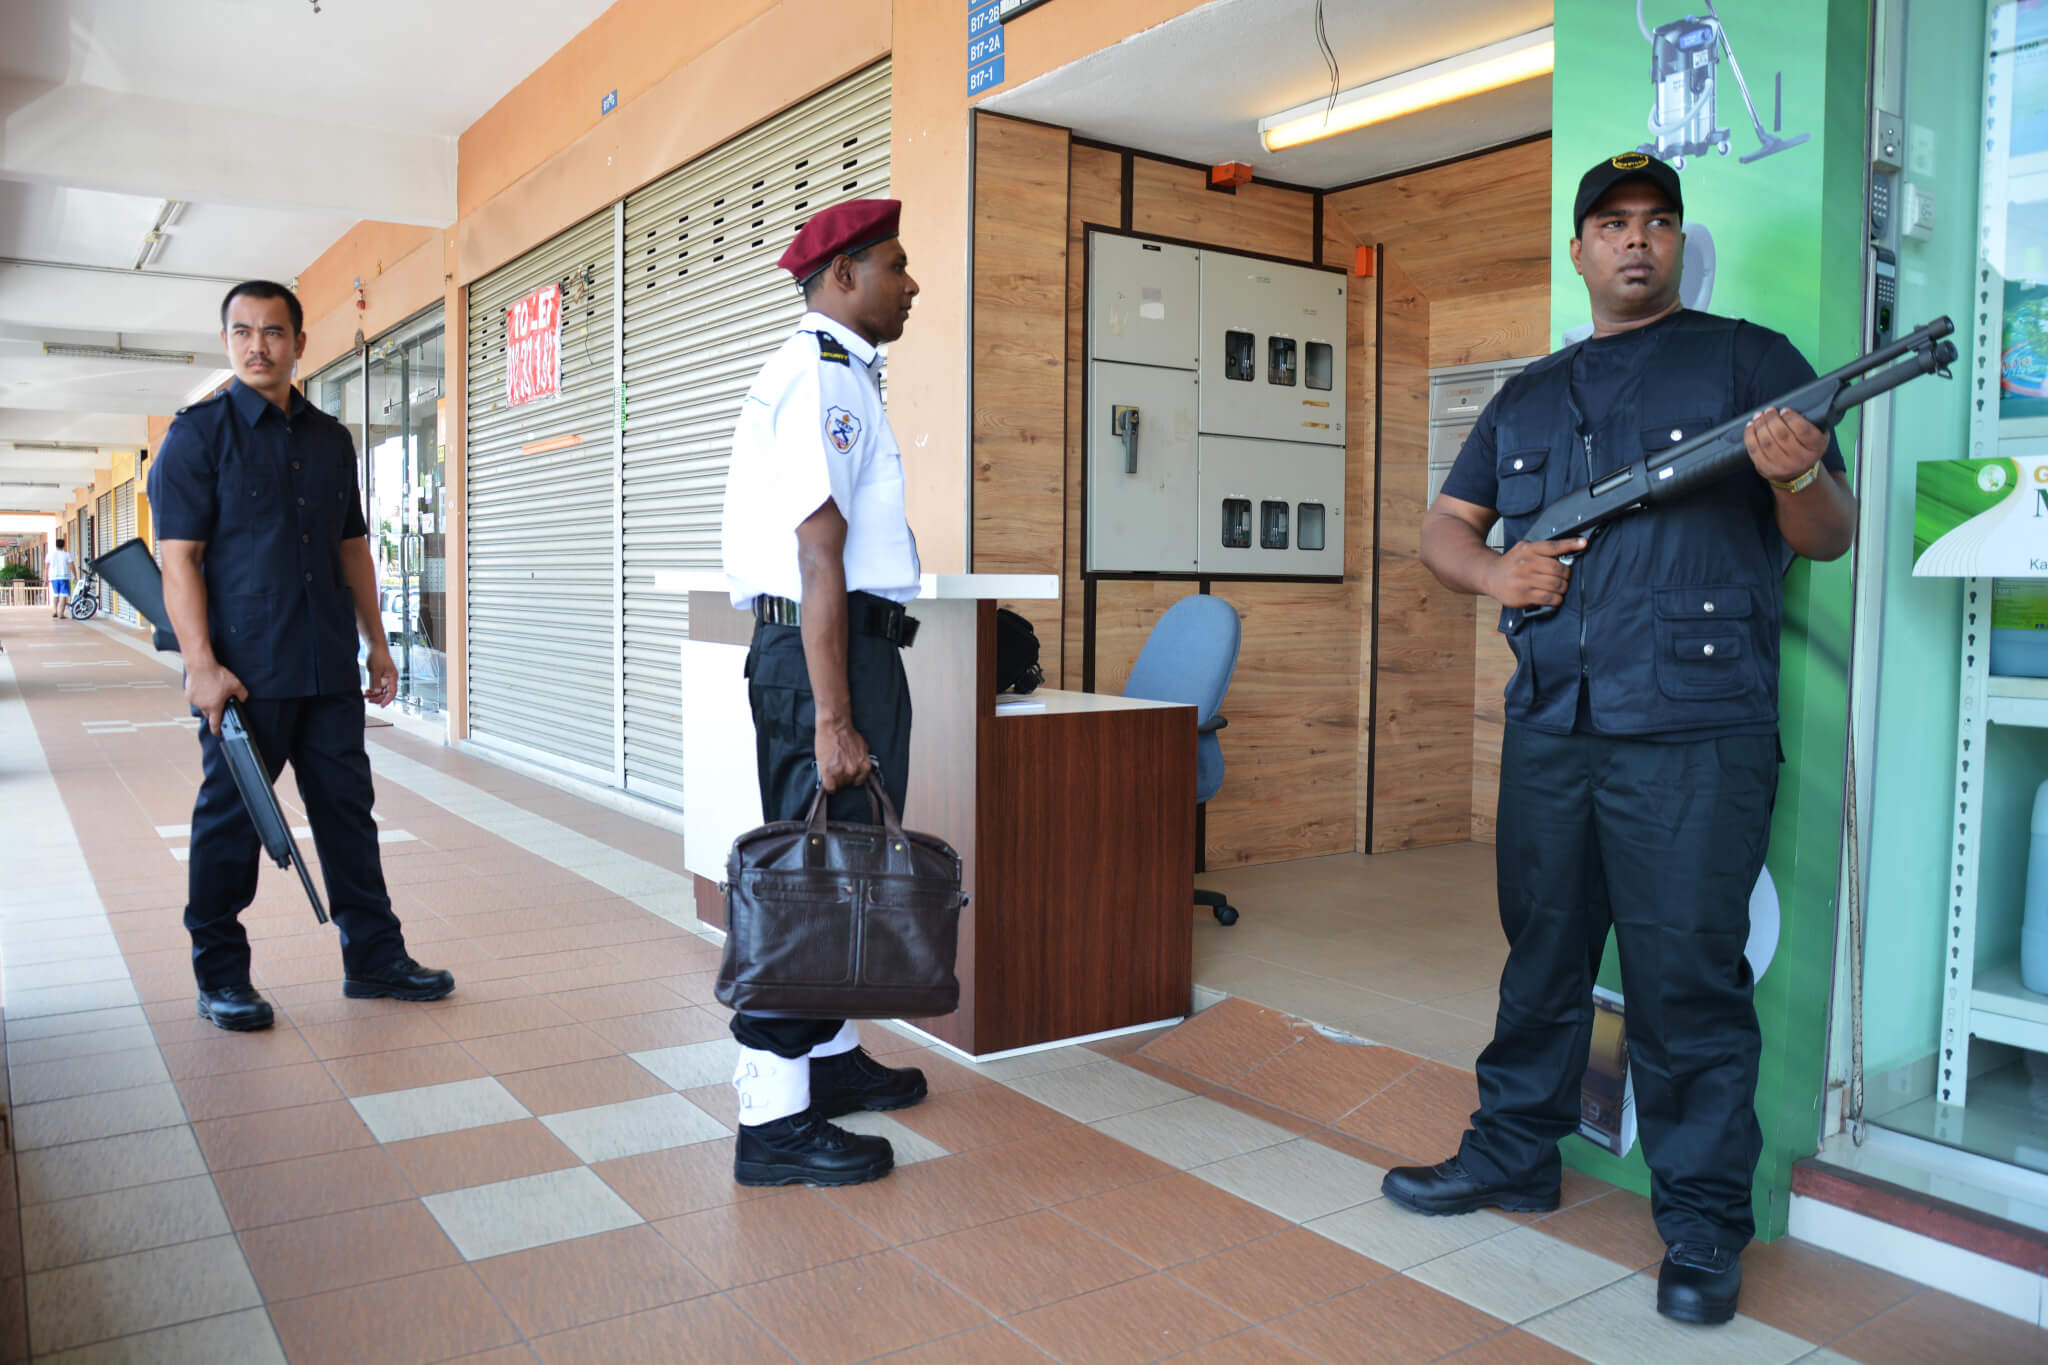 Security Services Bhora Holdings Sdn Bhd